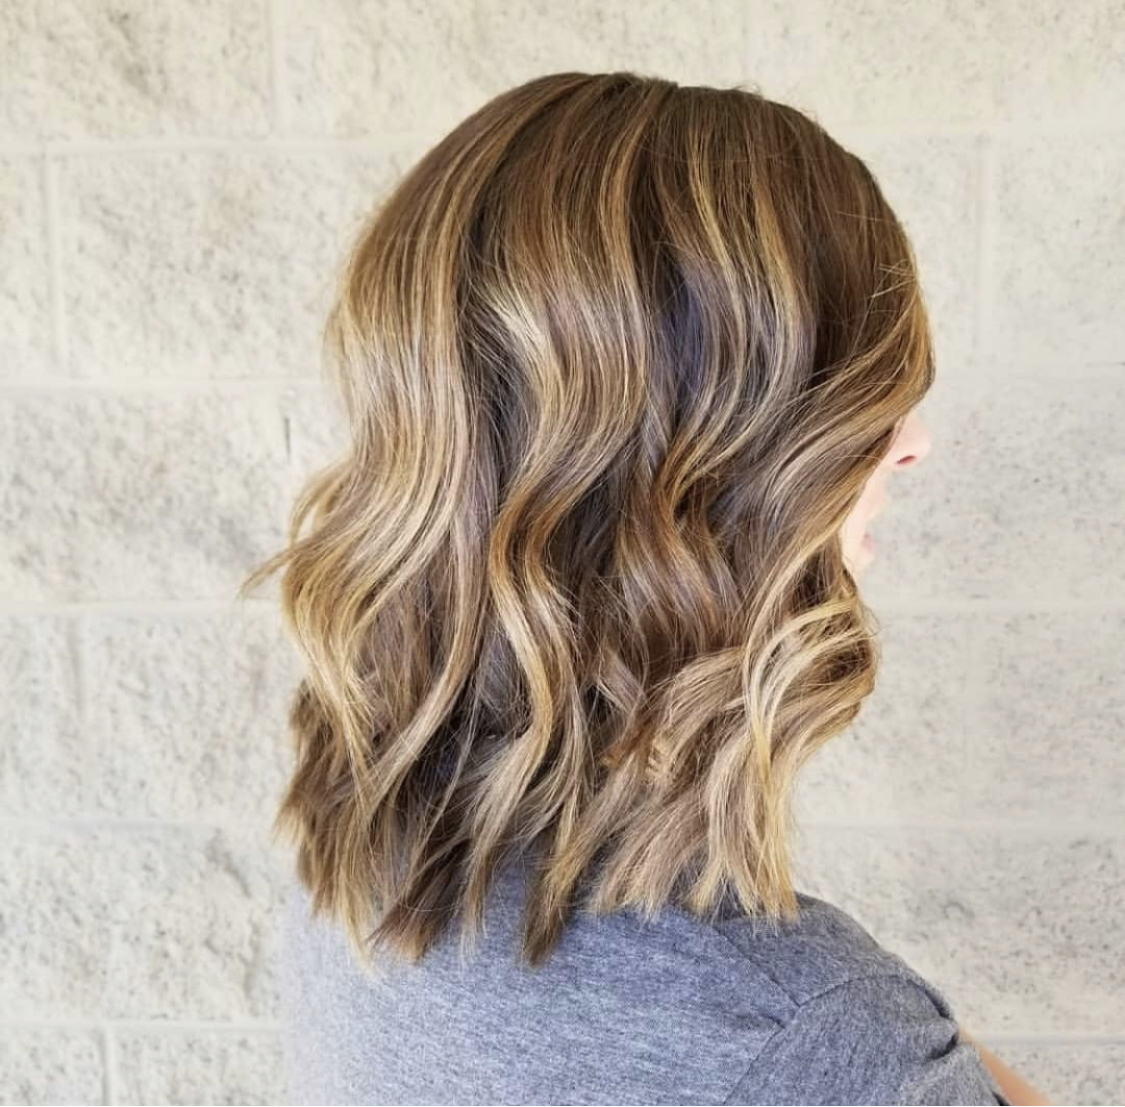 Salon Hairstyles For Short Hair Hair Cuts And Color Kellie And Company